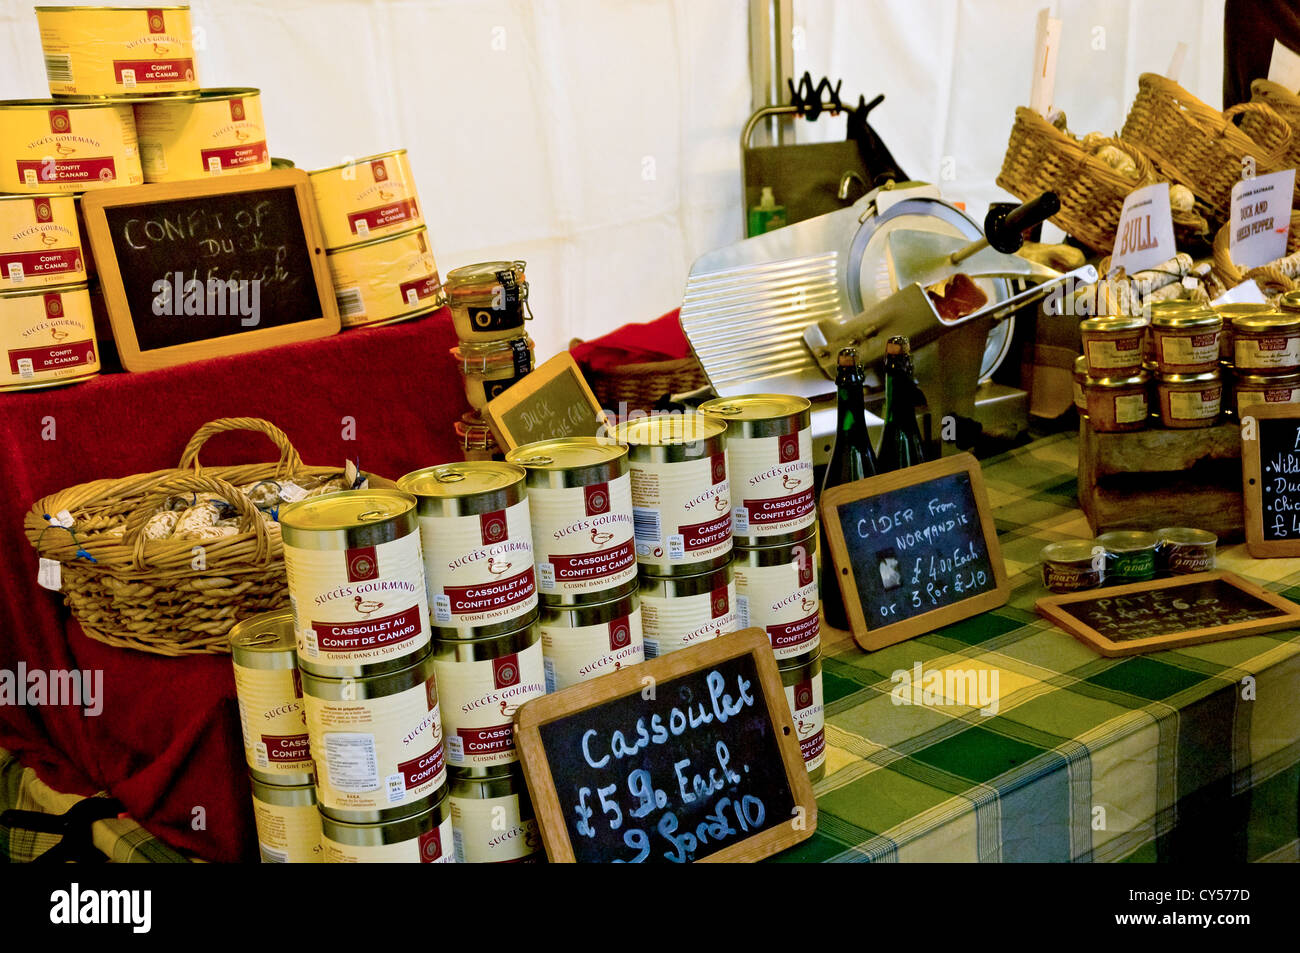 Tins of cassoulet for sale on continental market stall York North Yorkshire England UK United Kingdom GB Great Britain - Stock Image